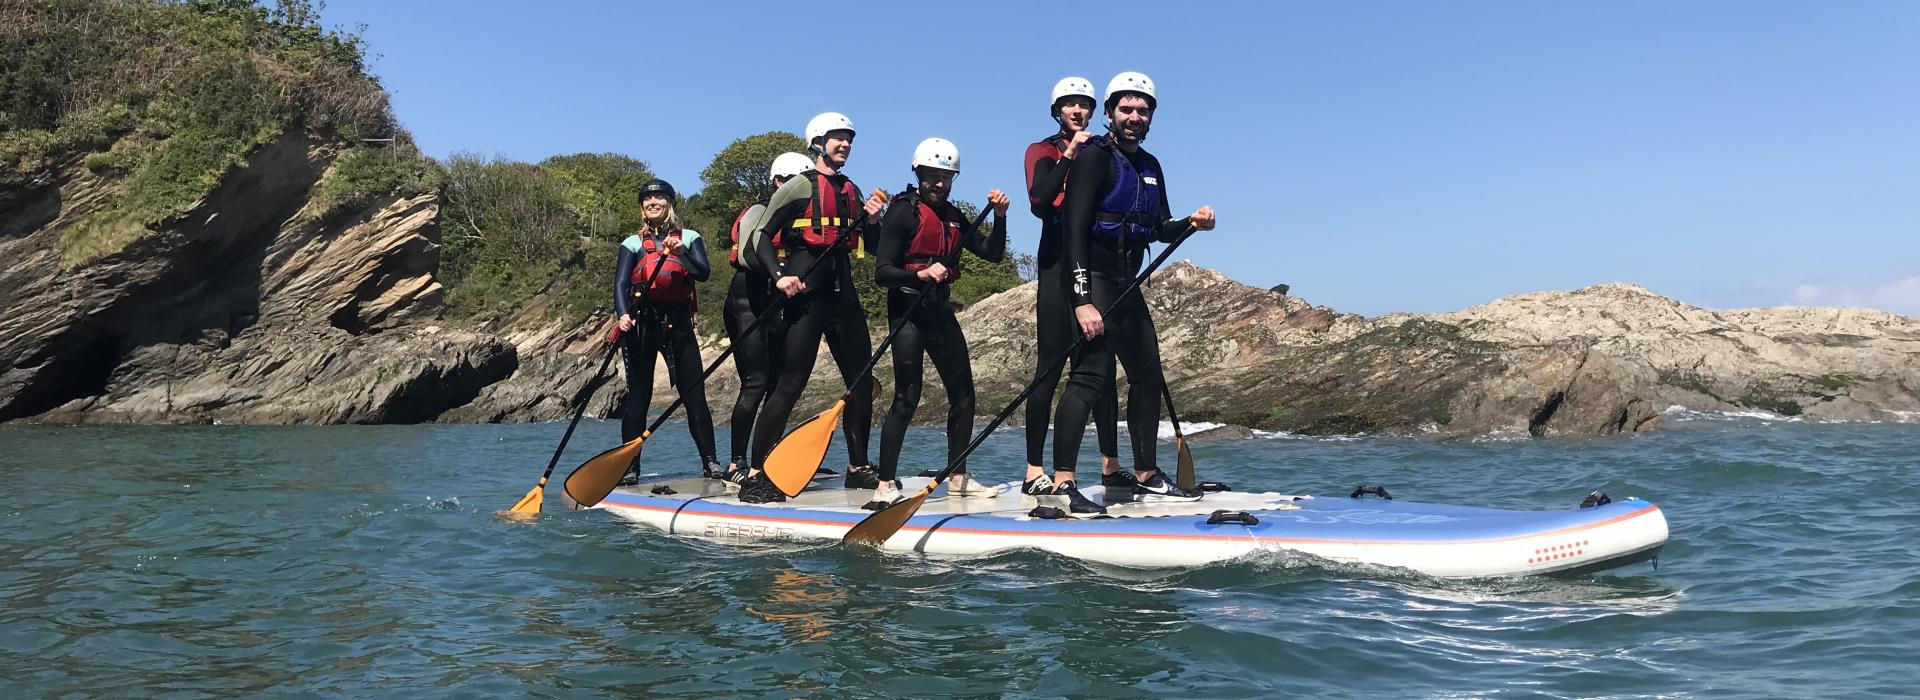 family stand up paddleboard, family holiday, family activities, friends holiday, paddleboard hire near me